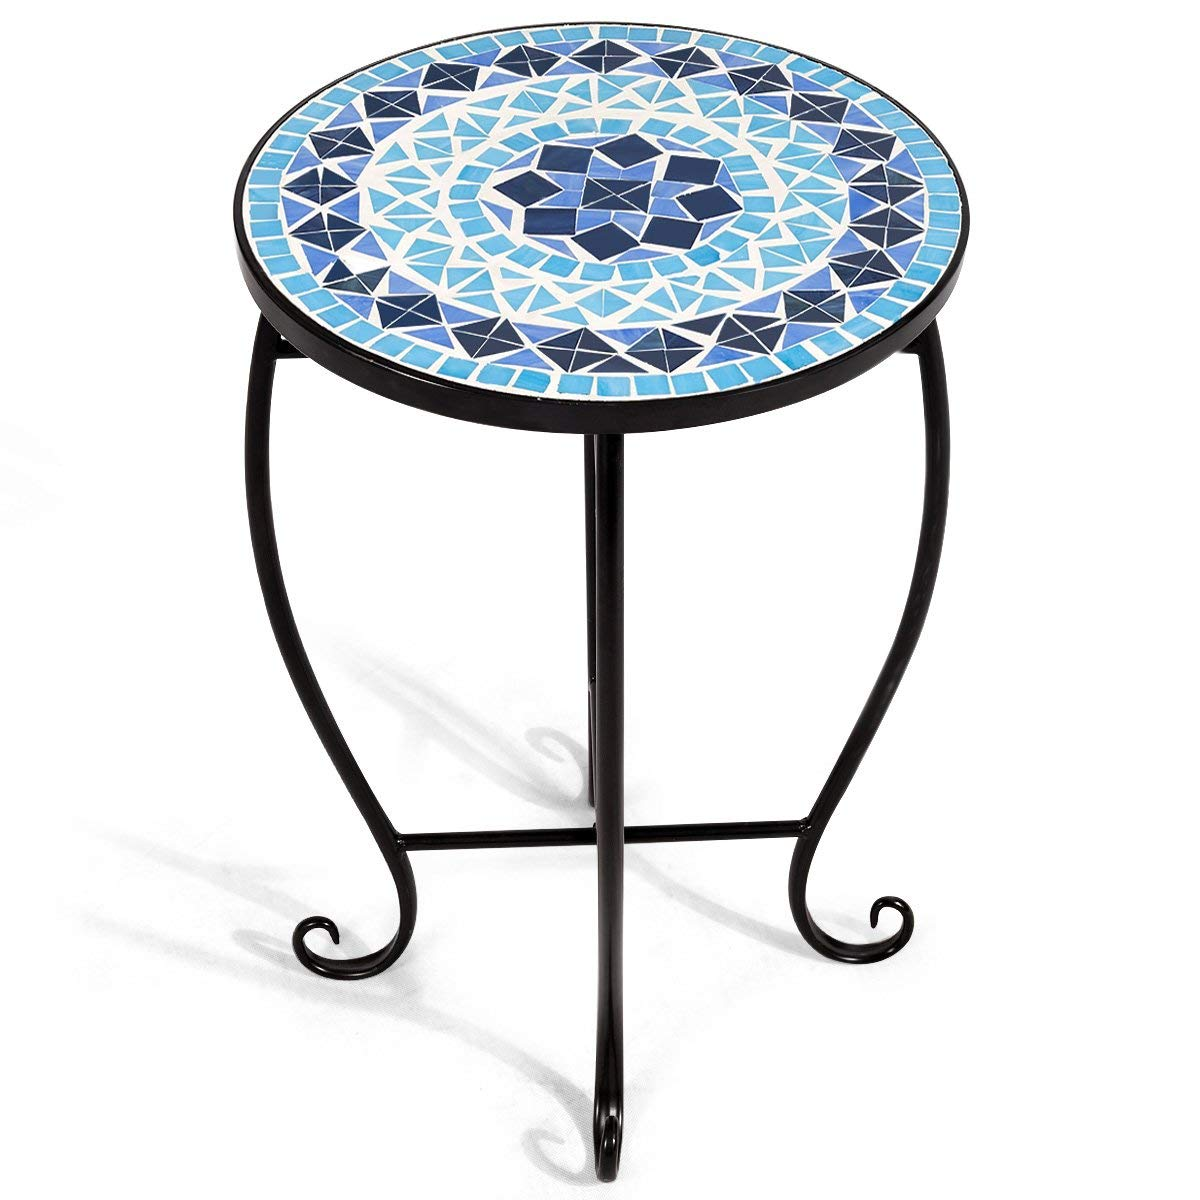 outdoor mosaic coffee table find side blue get quotations giantex round accent patio plant stand porch beach theme balcony back deck pool best drum throne ethan allen ladder